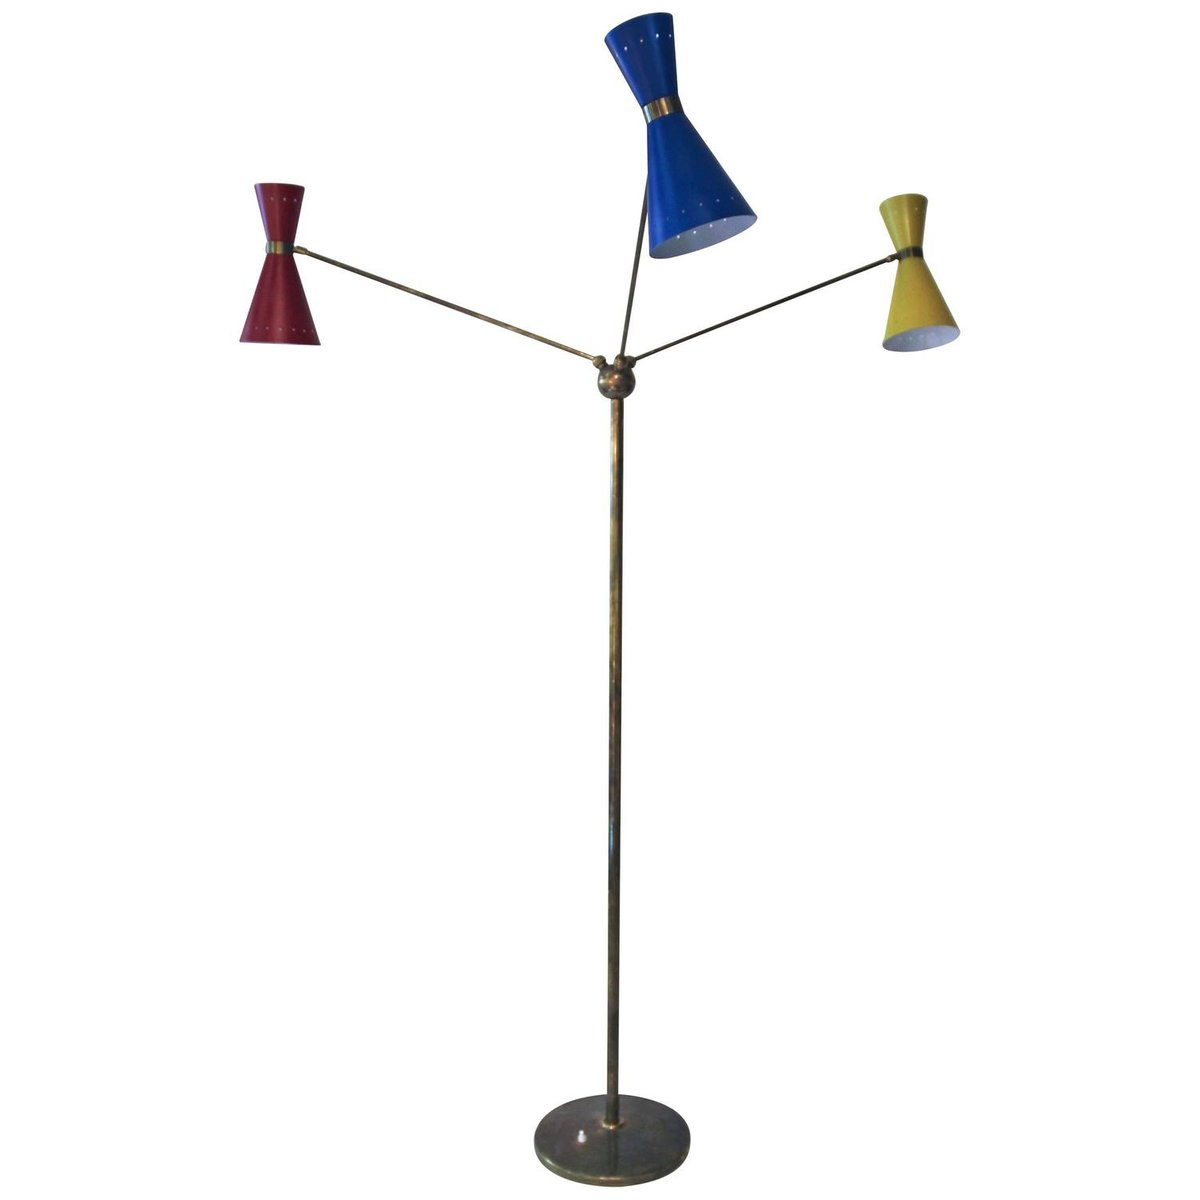 Italian Triennale Br And Metal Floor Lamp With Three Lights 1960s